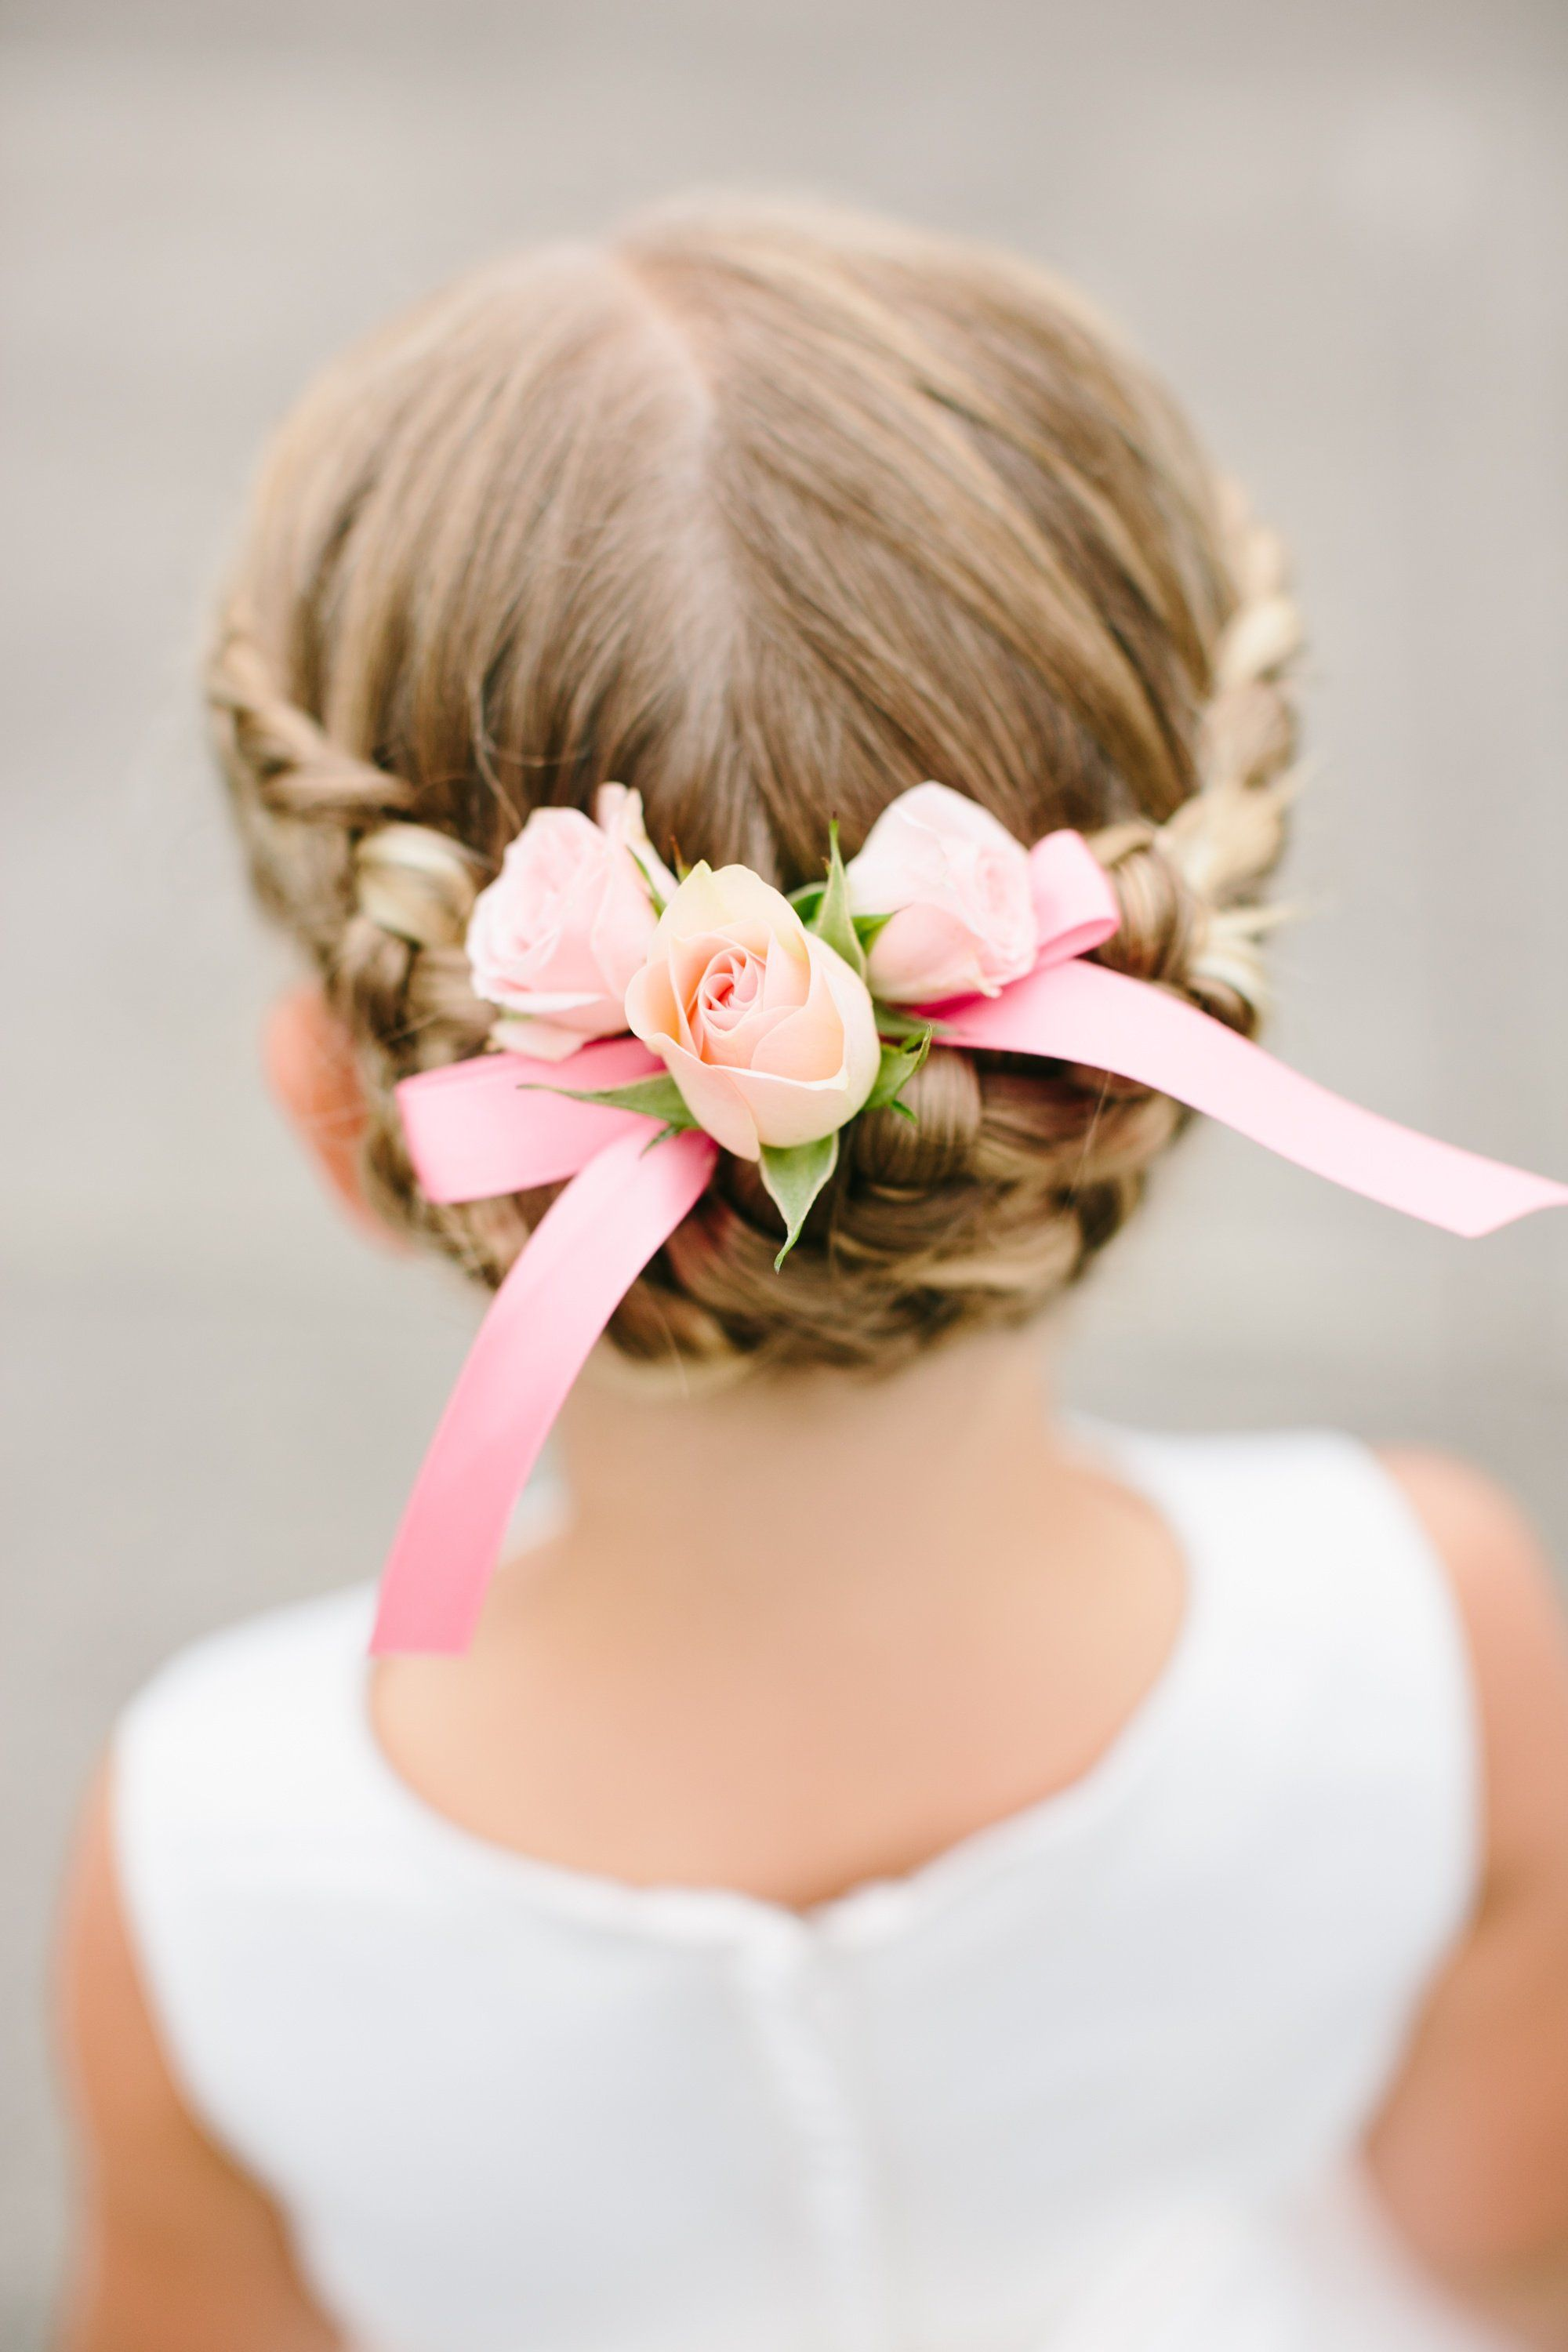 Braided Flower Girl Updo With Floral Accent Cute Little Girl Hairstyles Flower Girl Updo Flower Girl Hairstyles